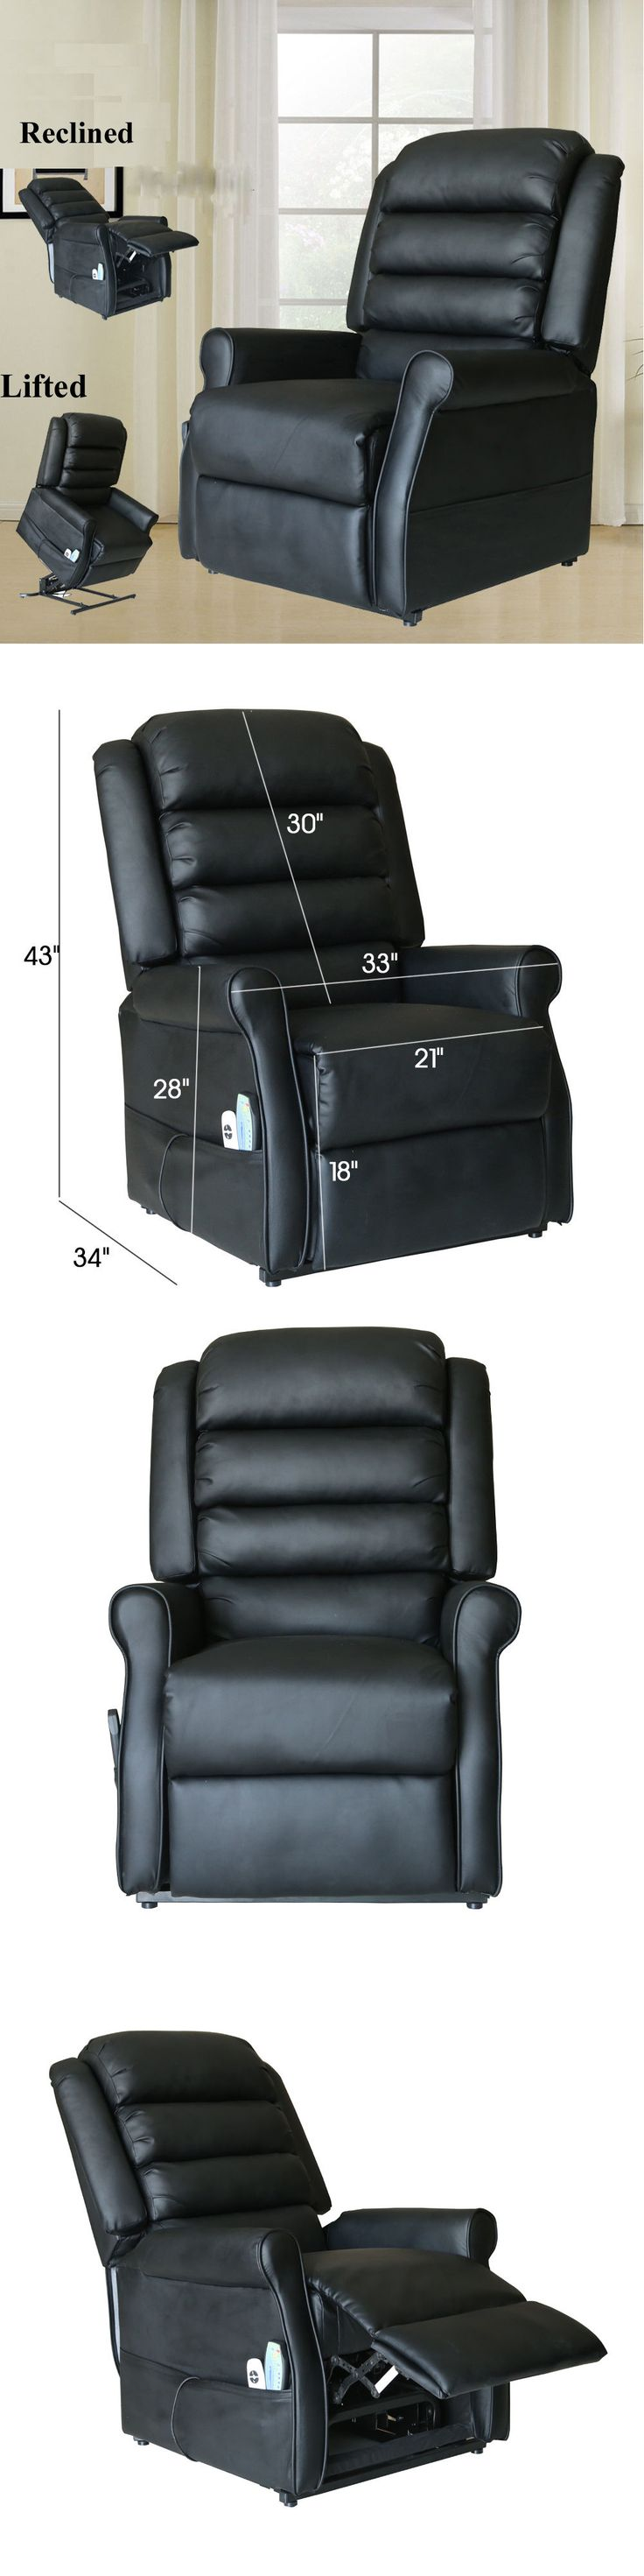 Electric Massage Chairs: Electric Power Lift Chair Leather Heated Massage  Recliner Sofa Lounge W Control